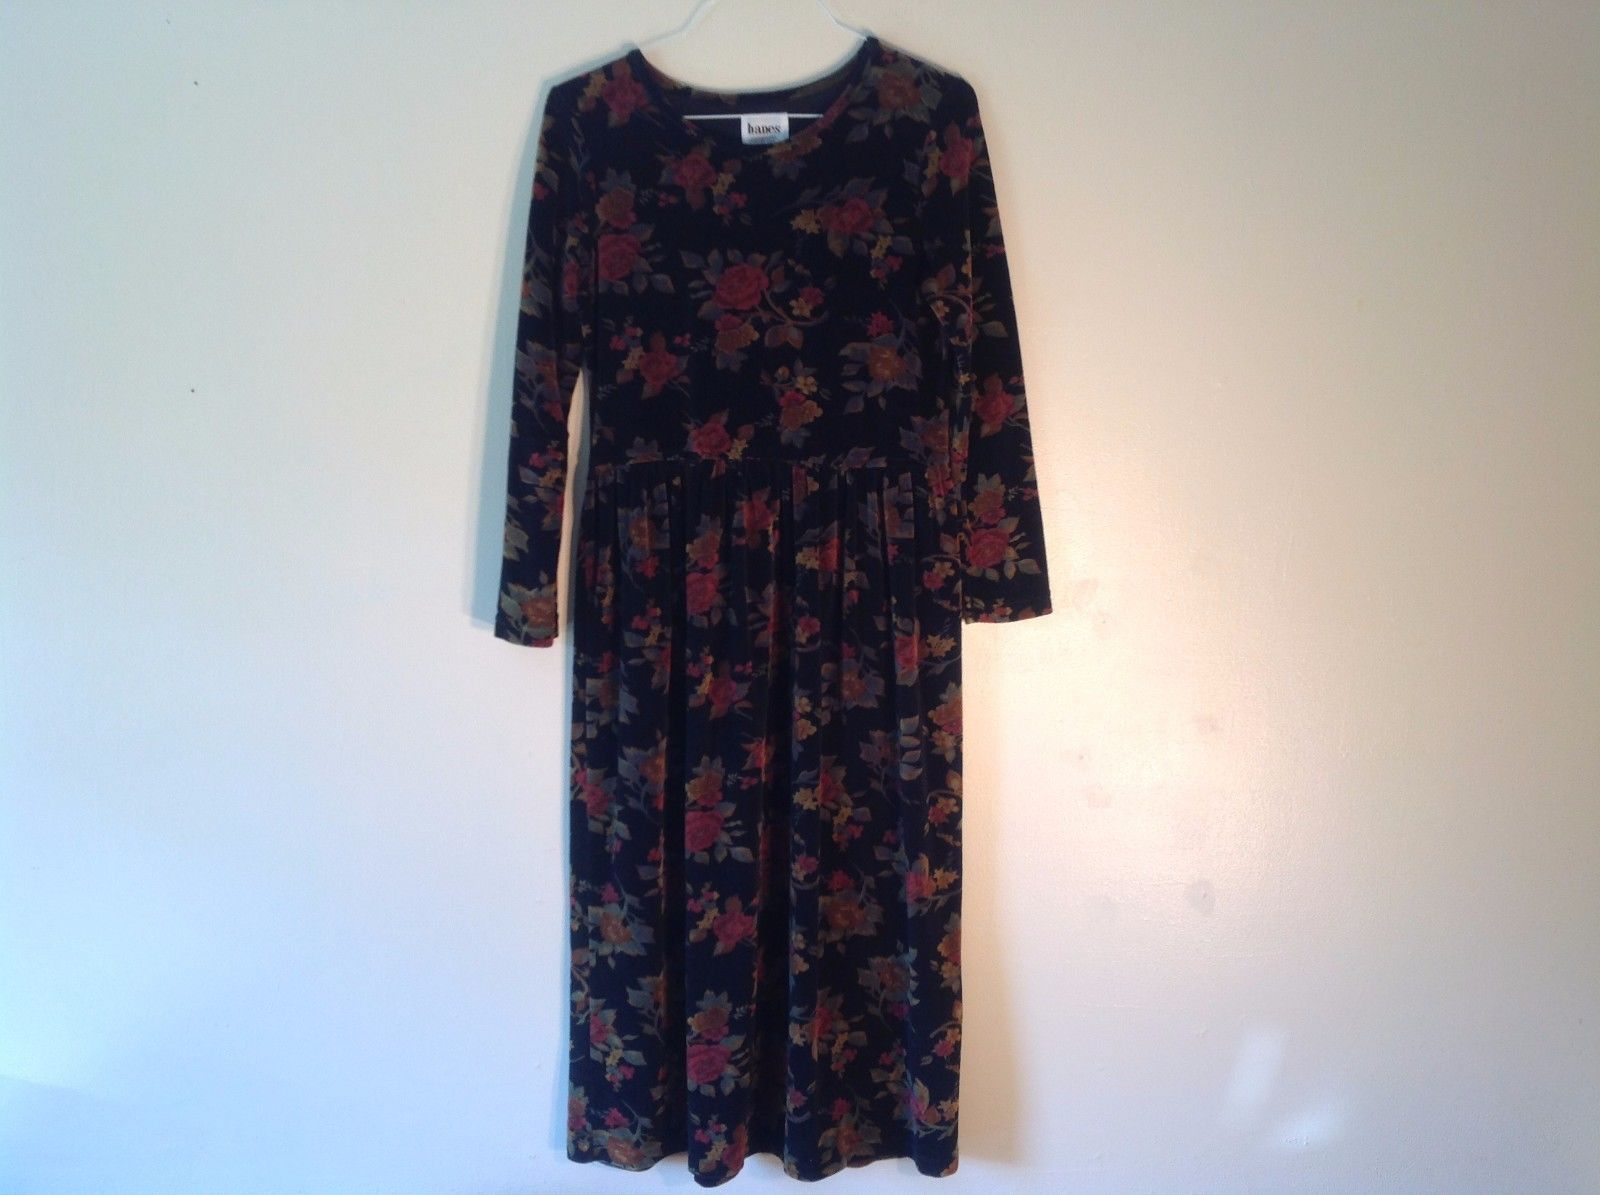 Great Condition Hanes Signature Collection Dress Size Small Black Floral Pattern